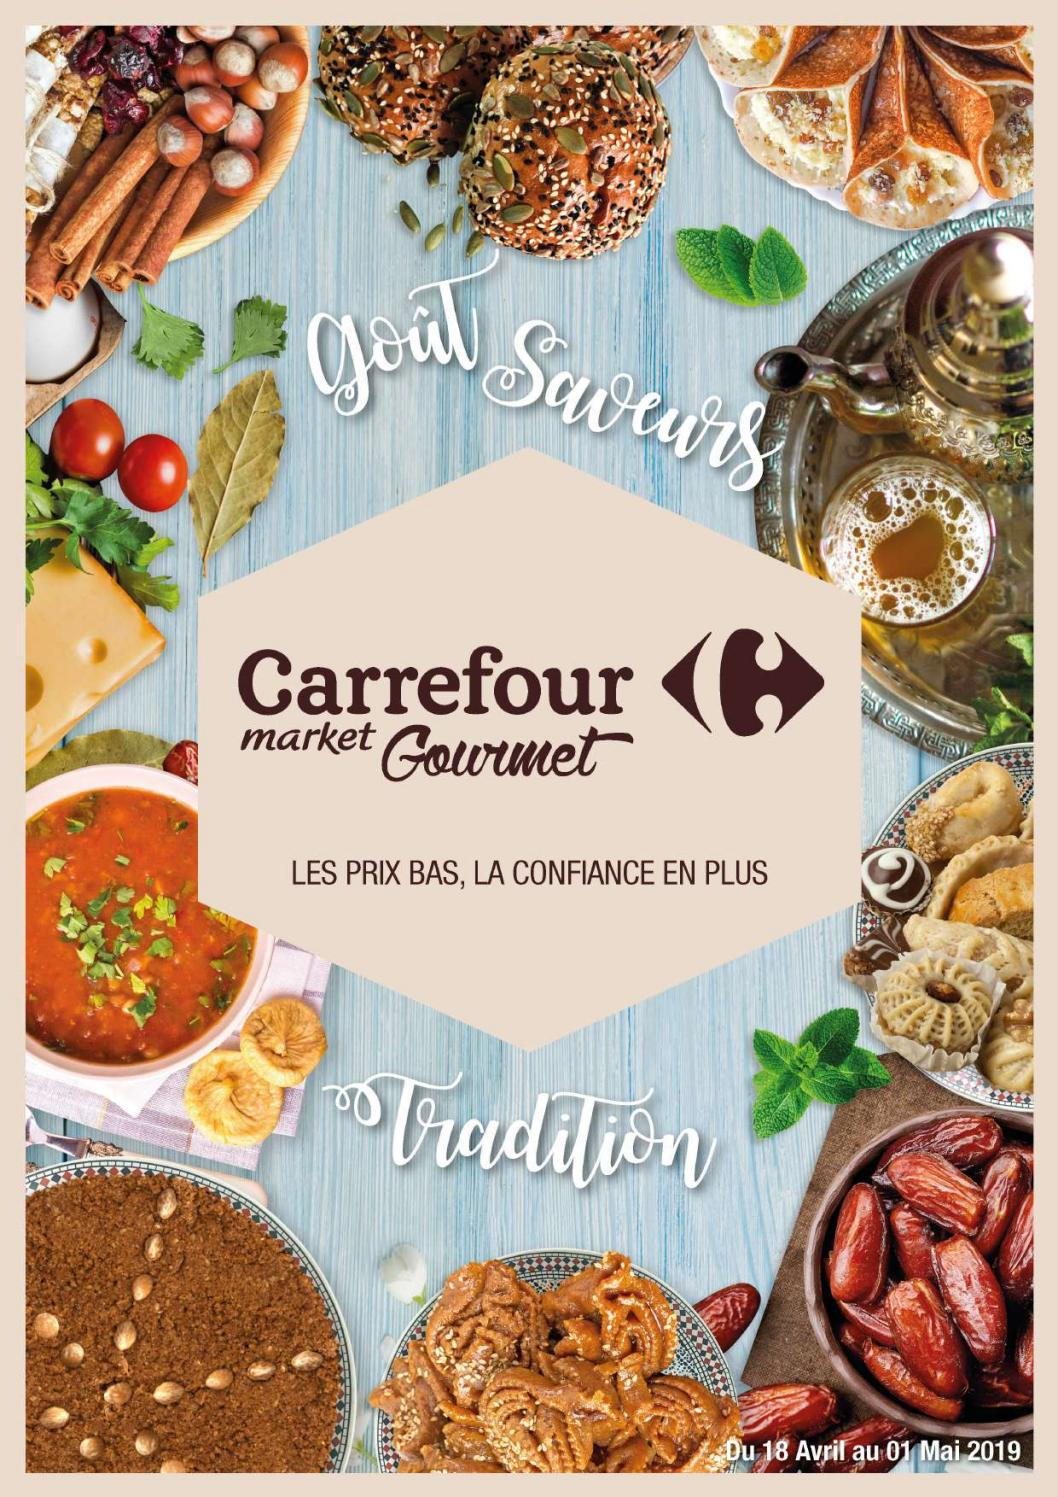 Carrefour Cuisine Carrefour Gourmet Chaaban 2019